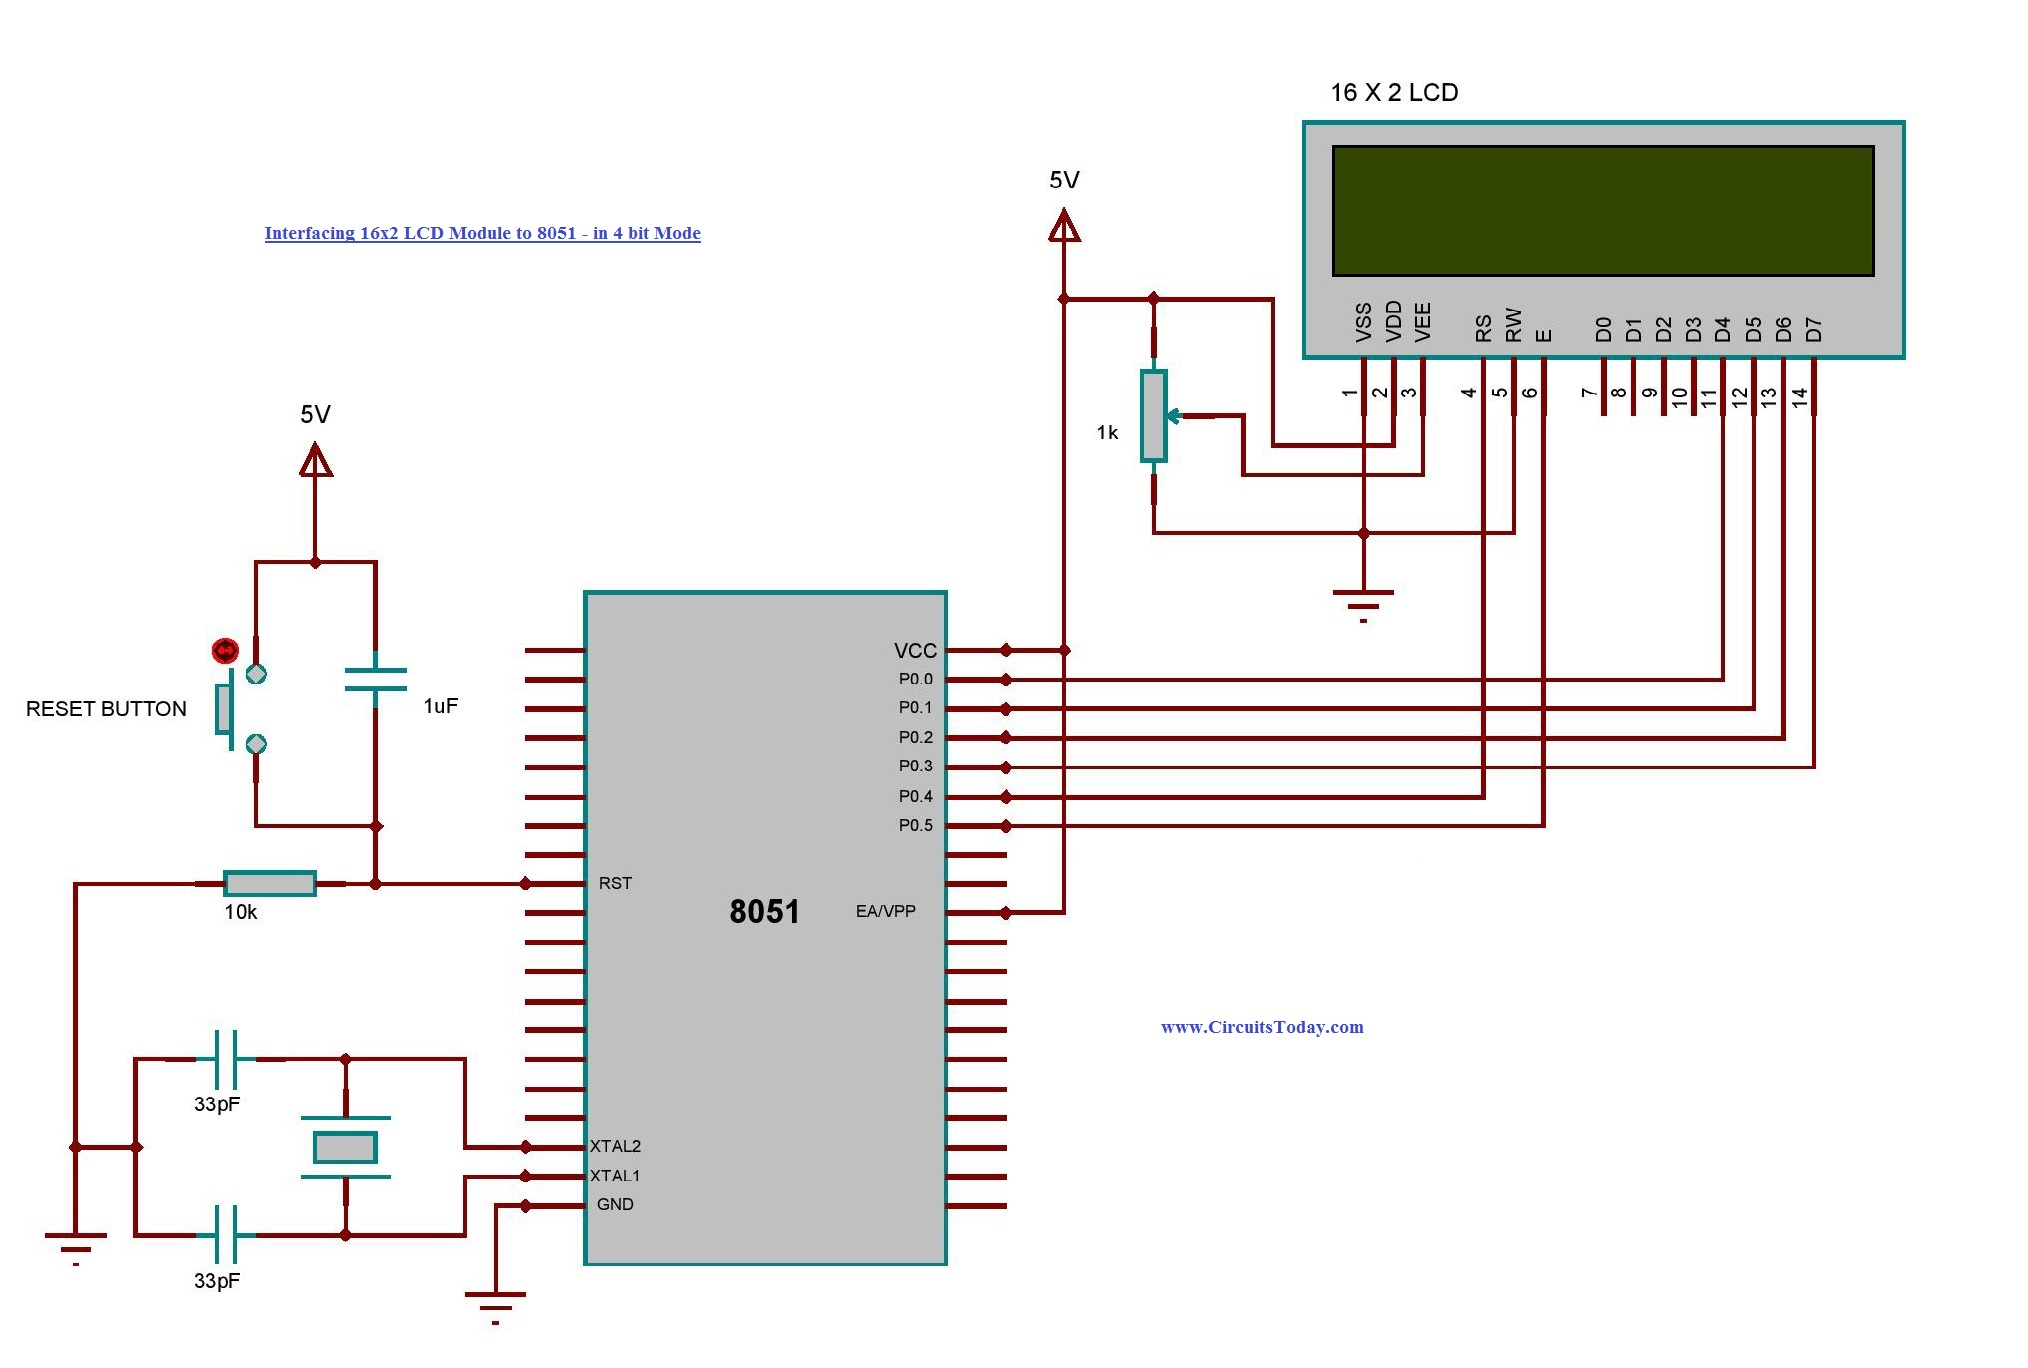 Interfacing 16x2 Lcd With 8051 Microcontroller Module Theory Circuit Diagram As Well Fire Alarms Circuits Simple Also Schematic To In 4 Bit Mode